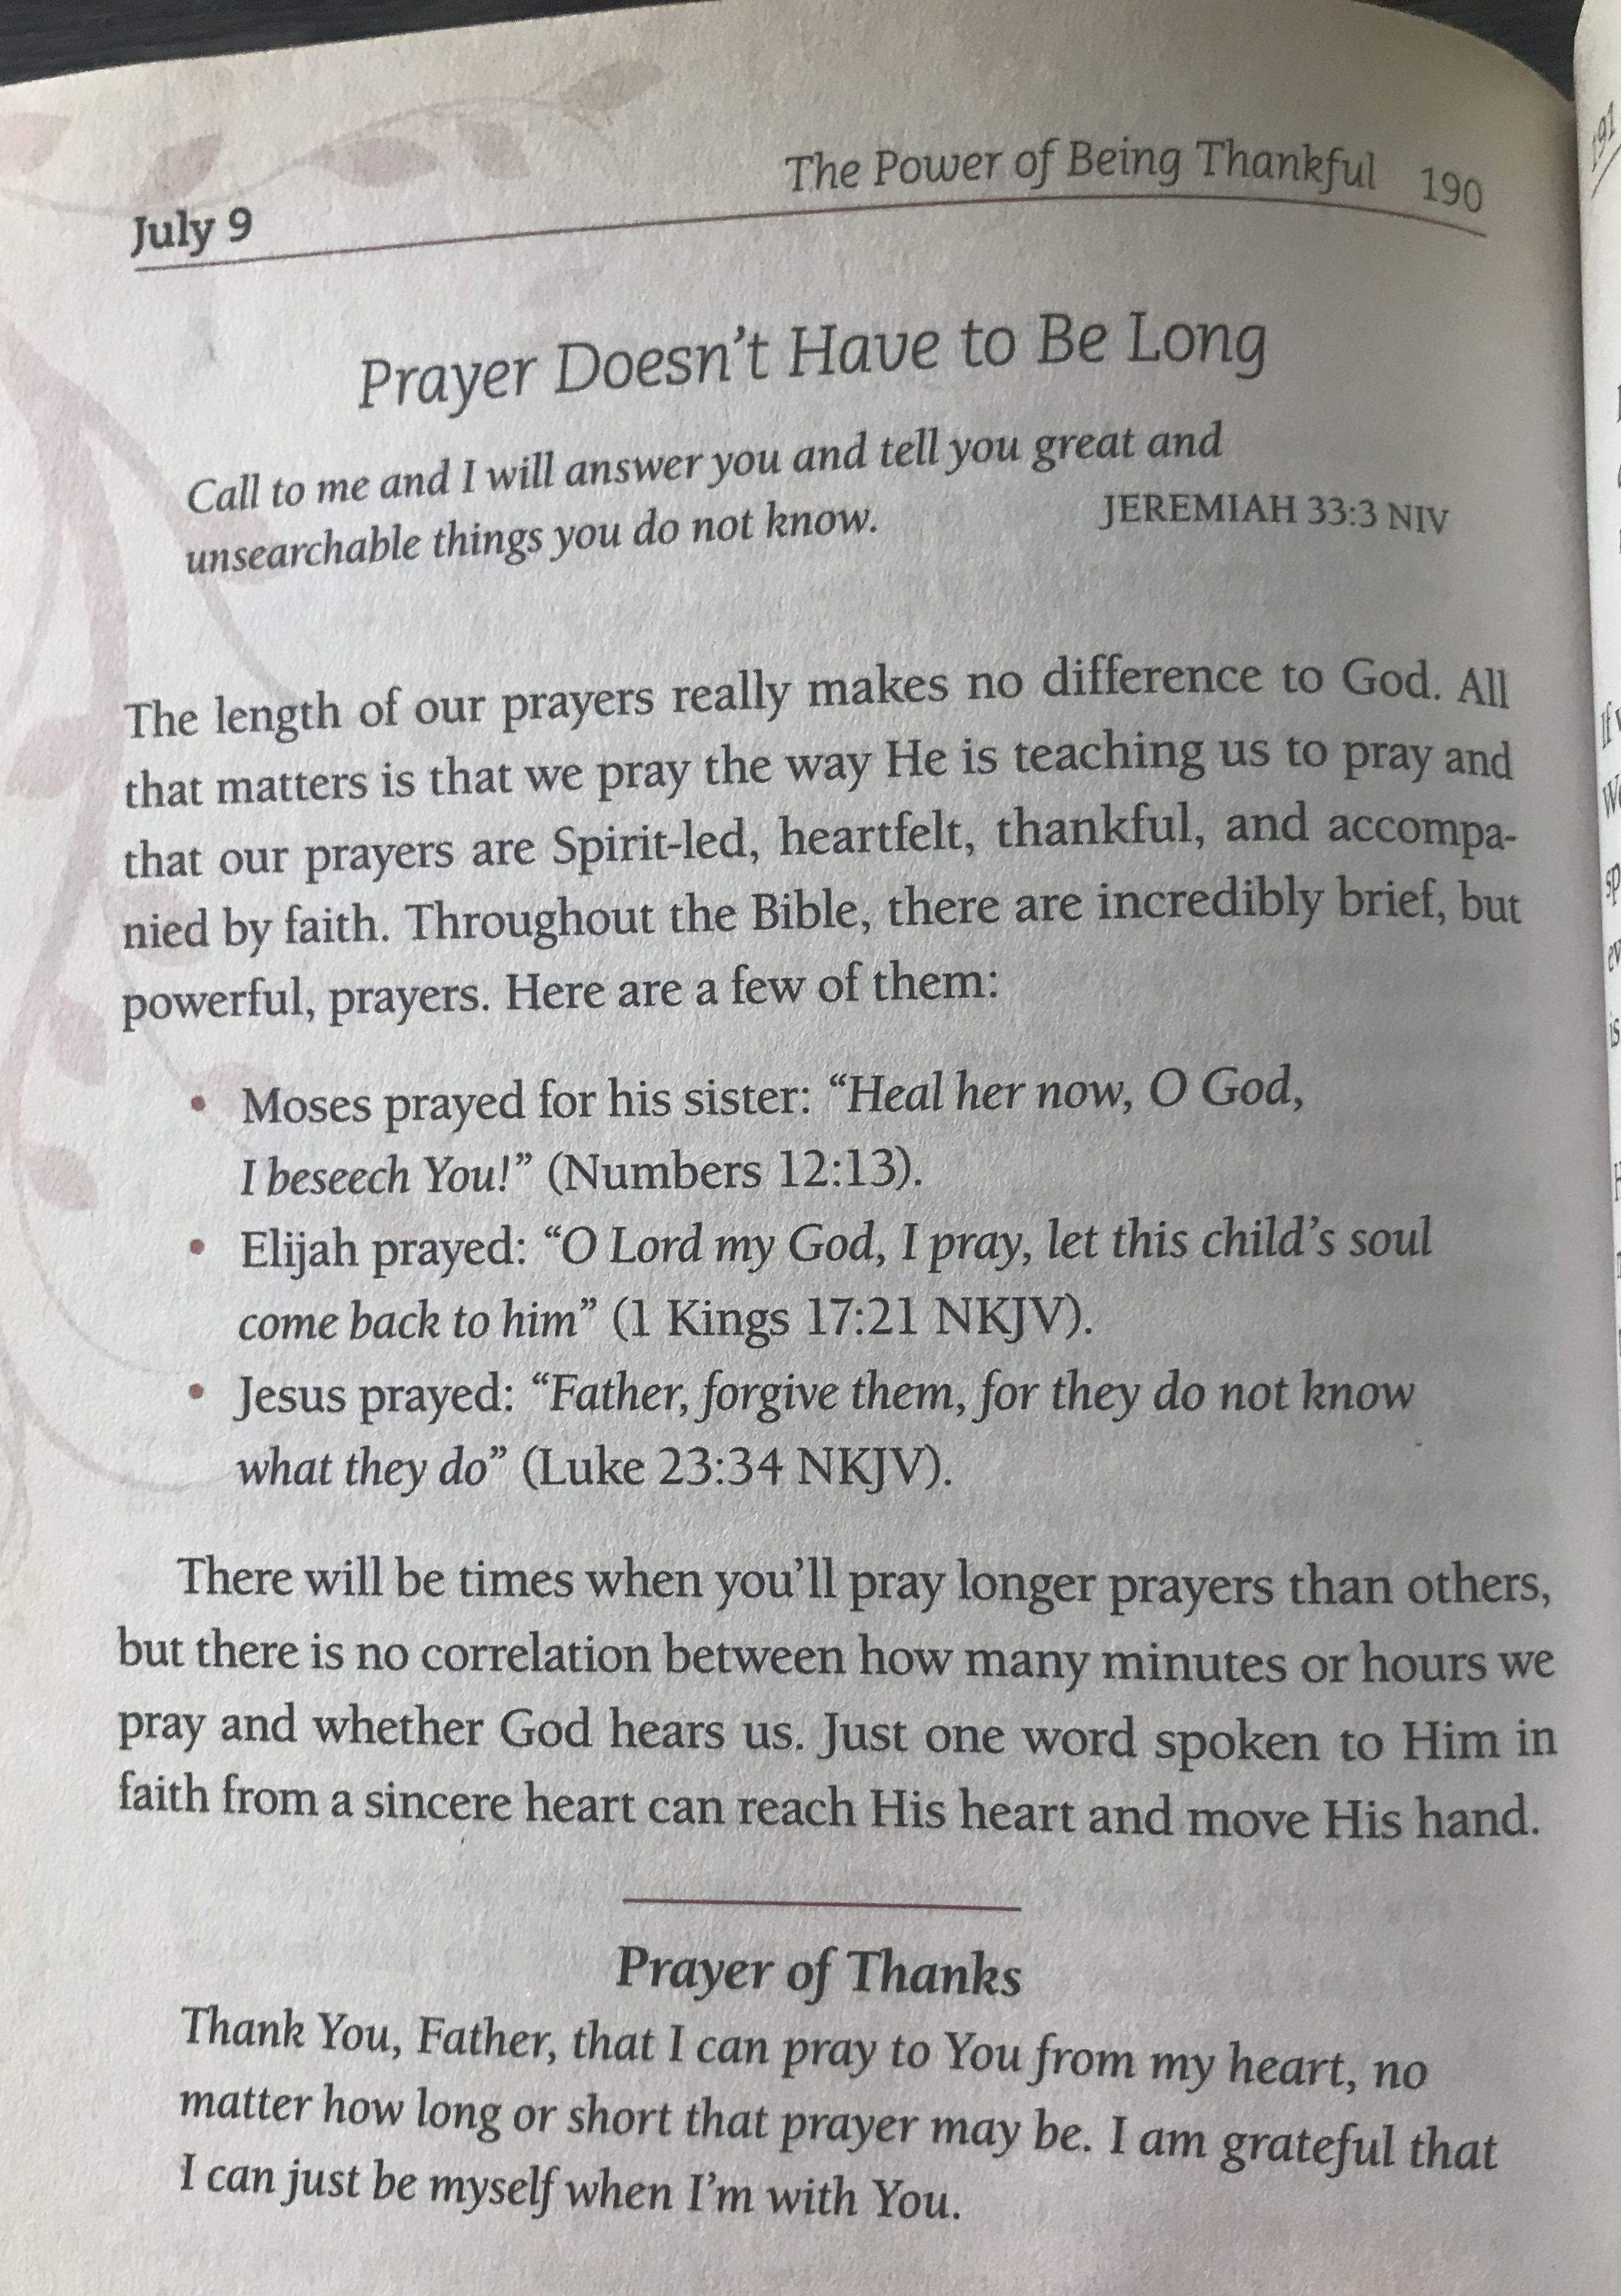 Pin By Diana Cardenales On In God We Trust In God We Trust Savior Prayers